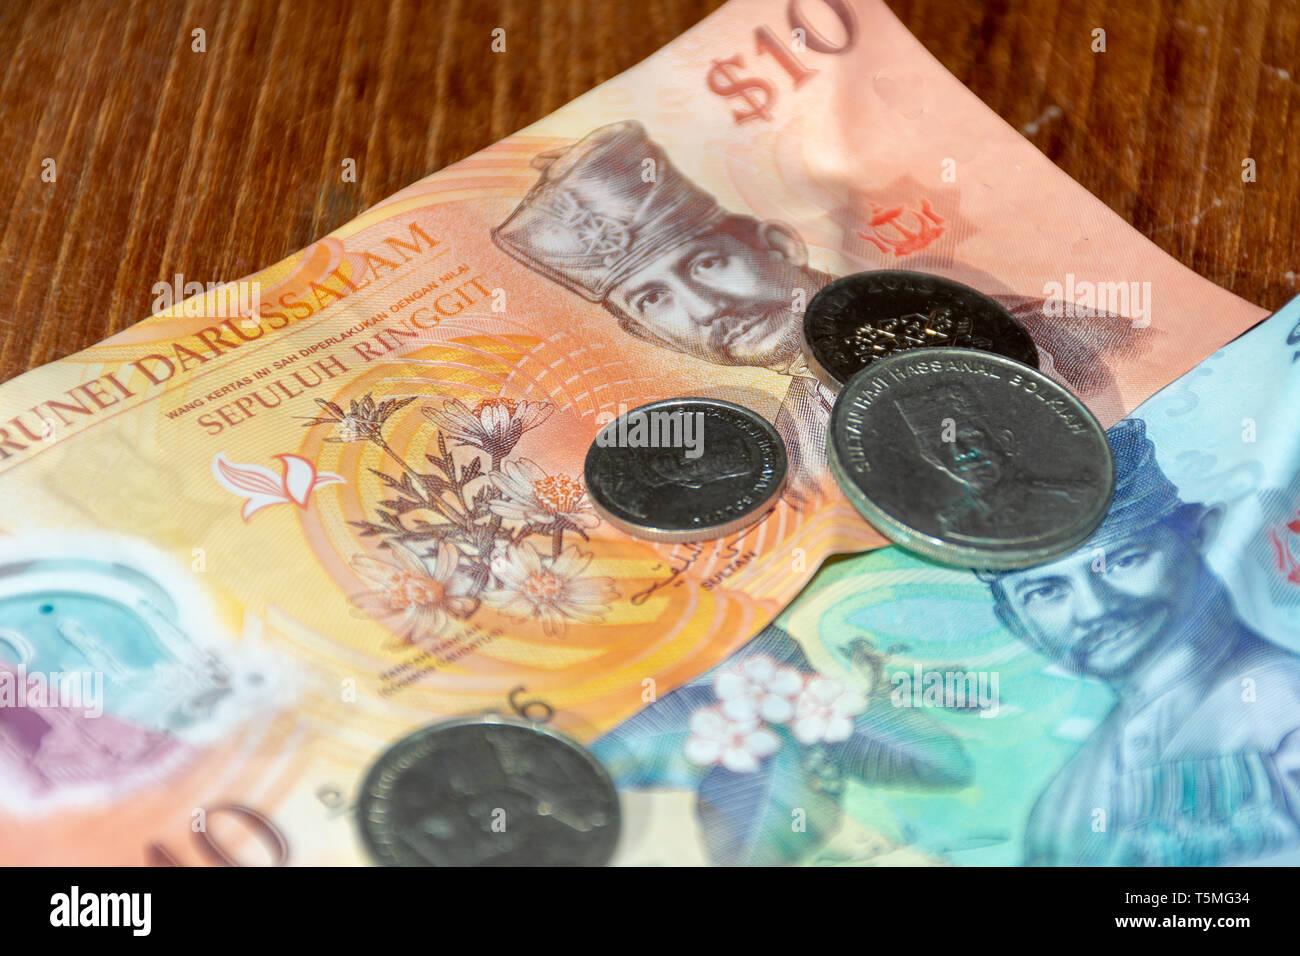 The dollar Currency of the Brunei Darussalem notes spread out on the table. Money exchange. - Stock Image